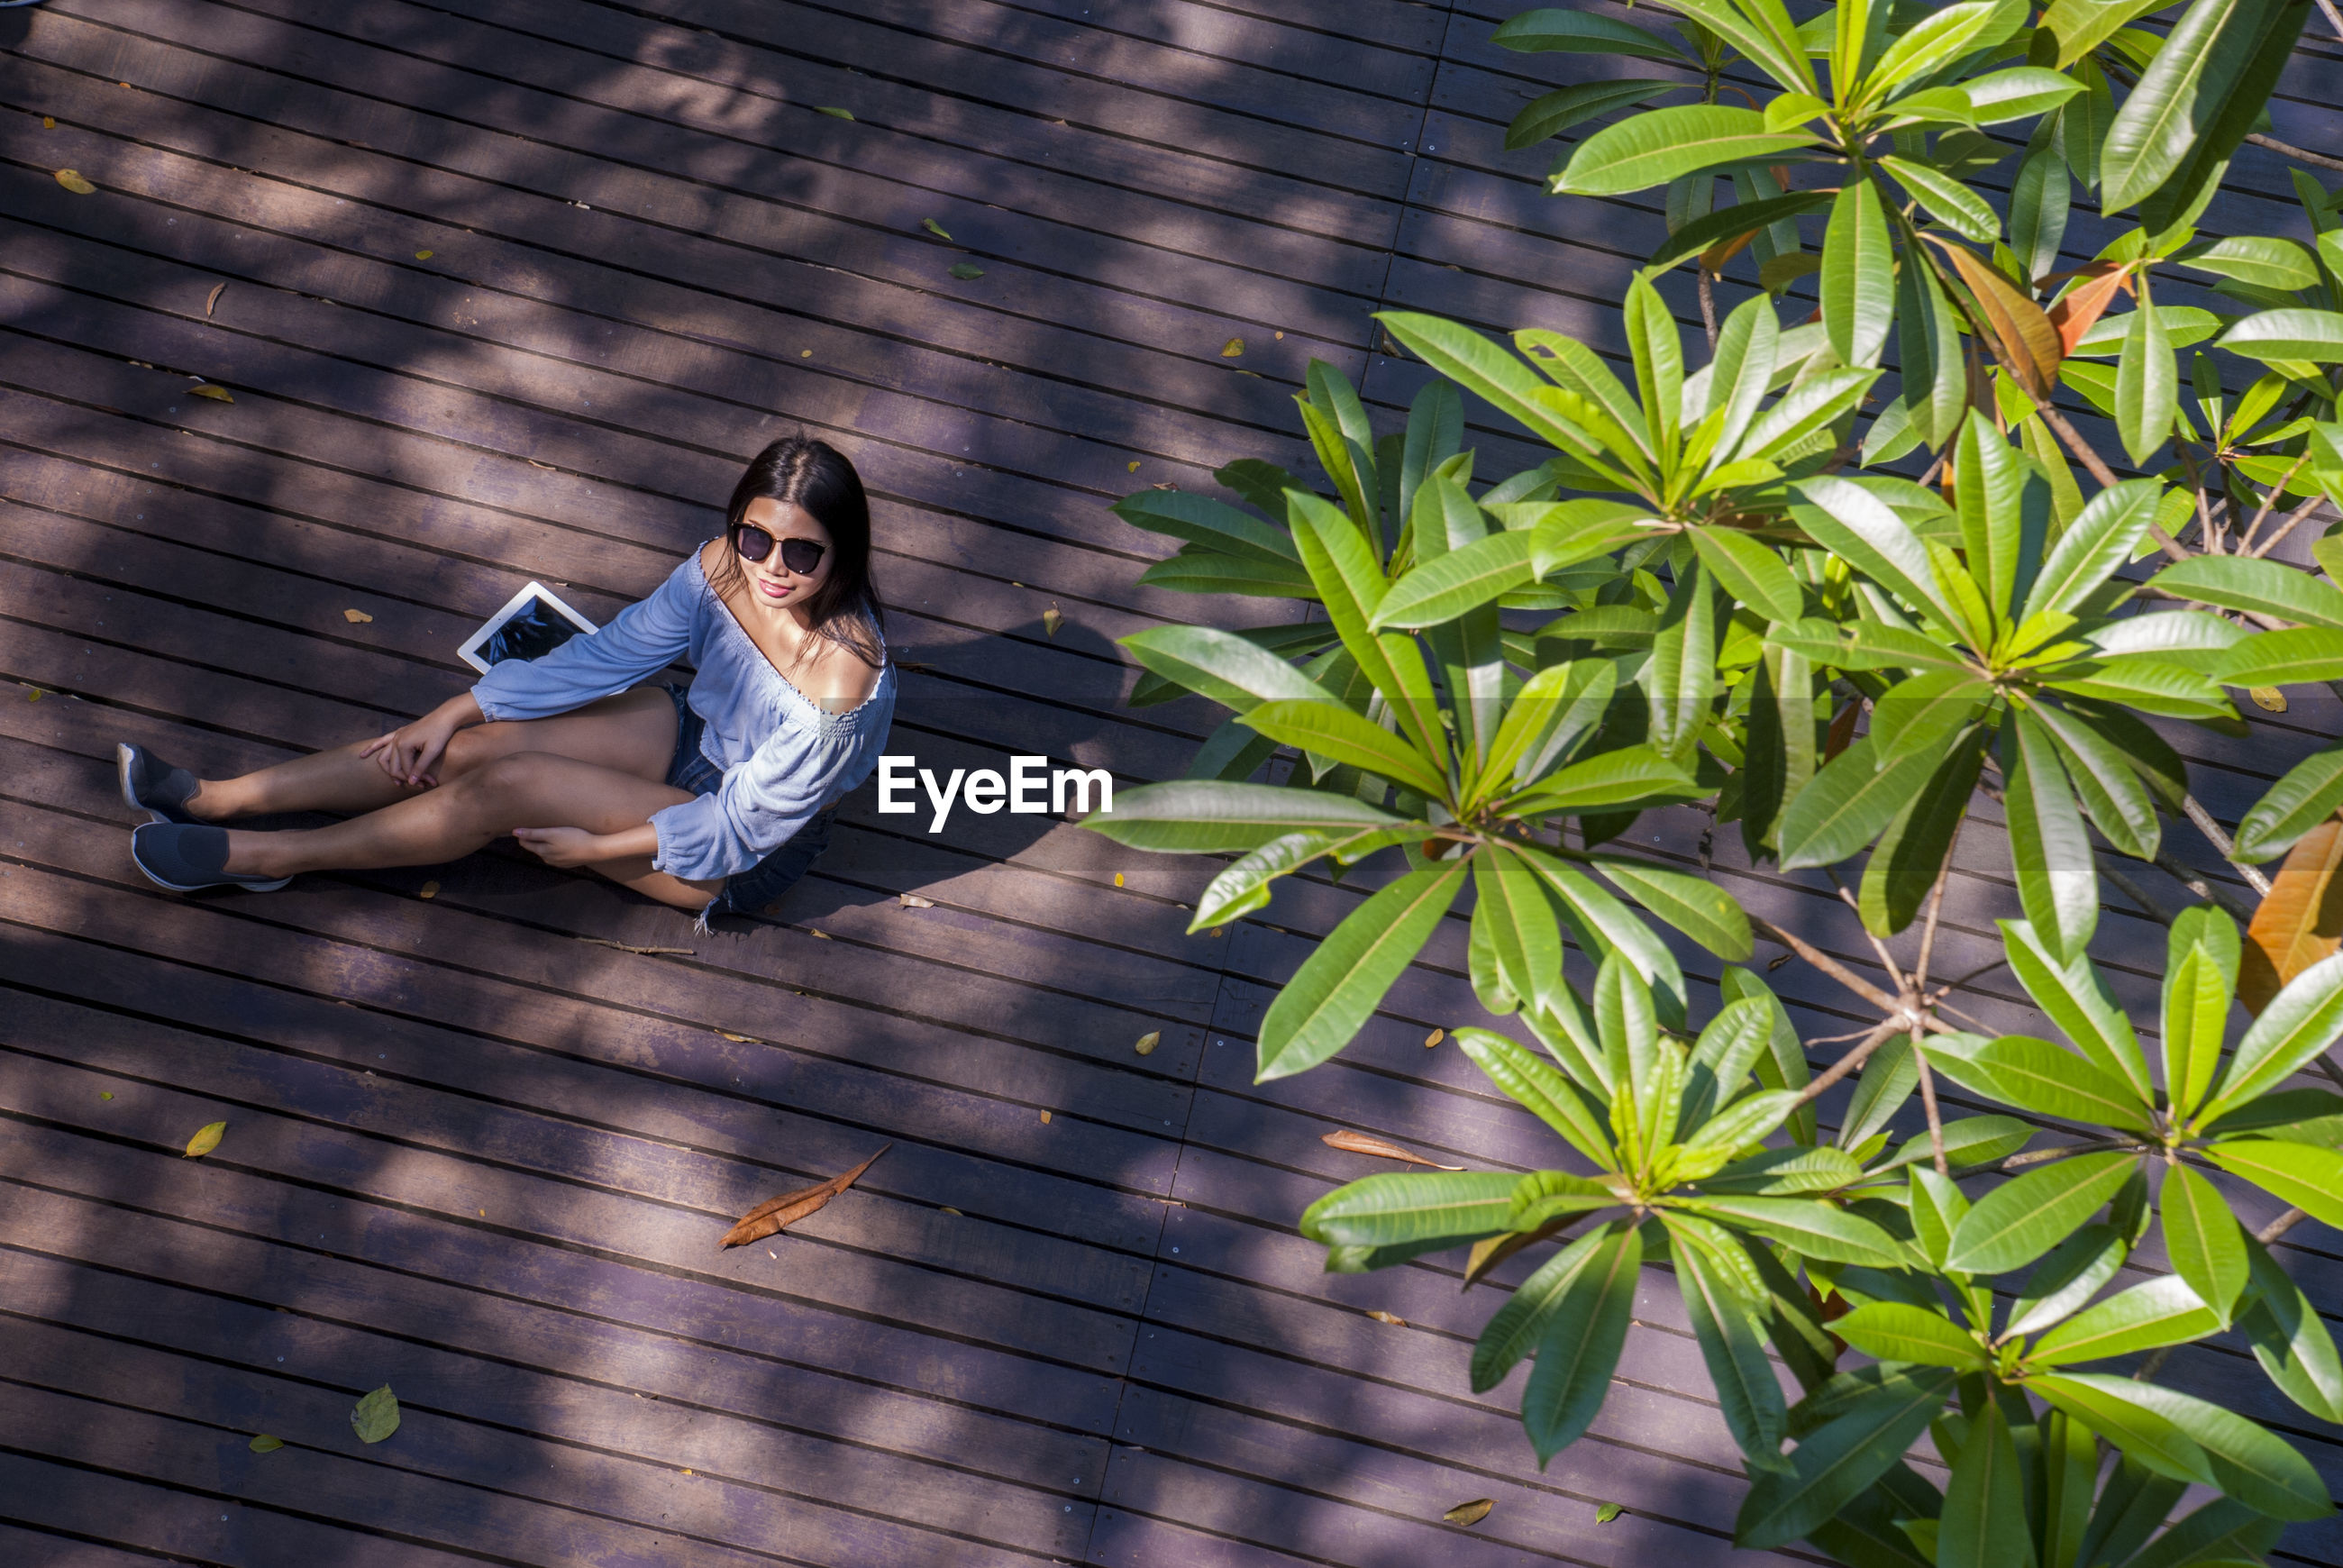 High angle view of woman wearing sunglasses with digital tablet sitting on boardwalk